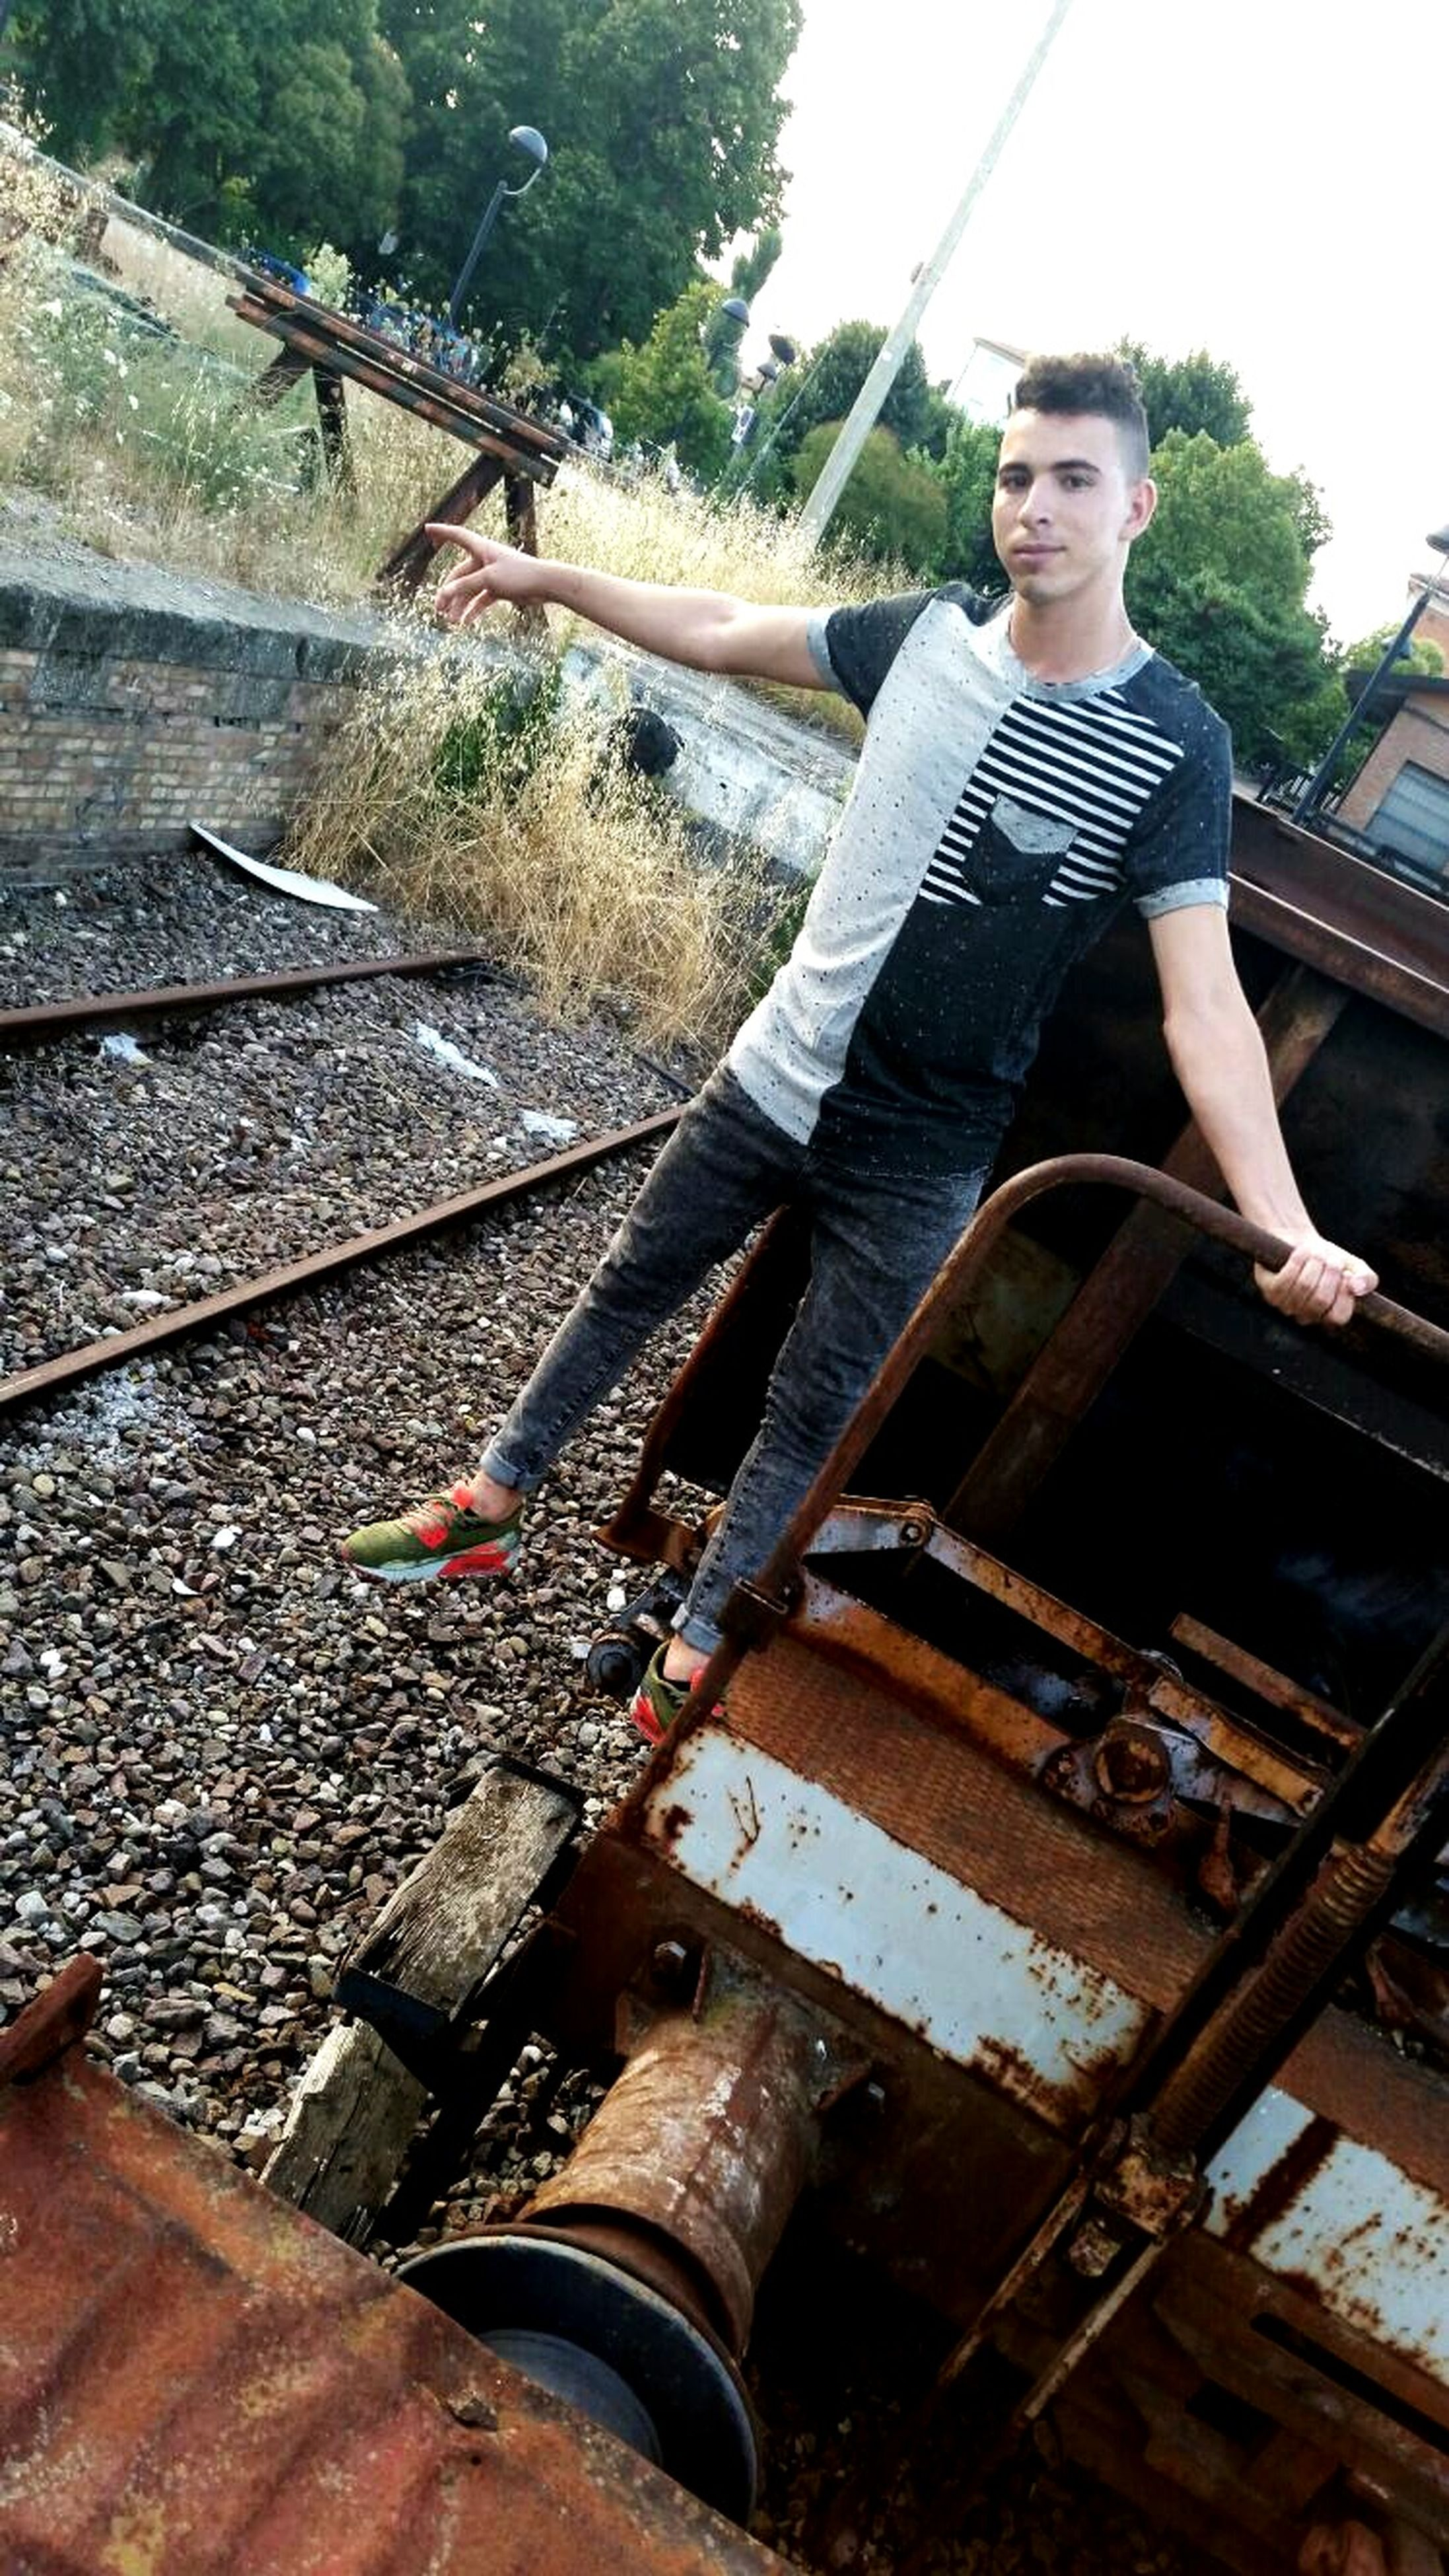 lifestyles, leisure activity, railroad track, casual clothing, day, outdoors